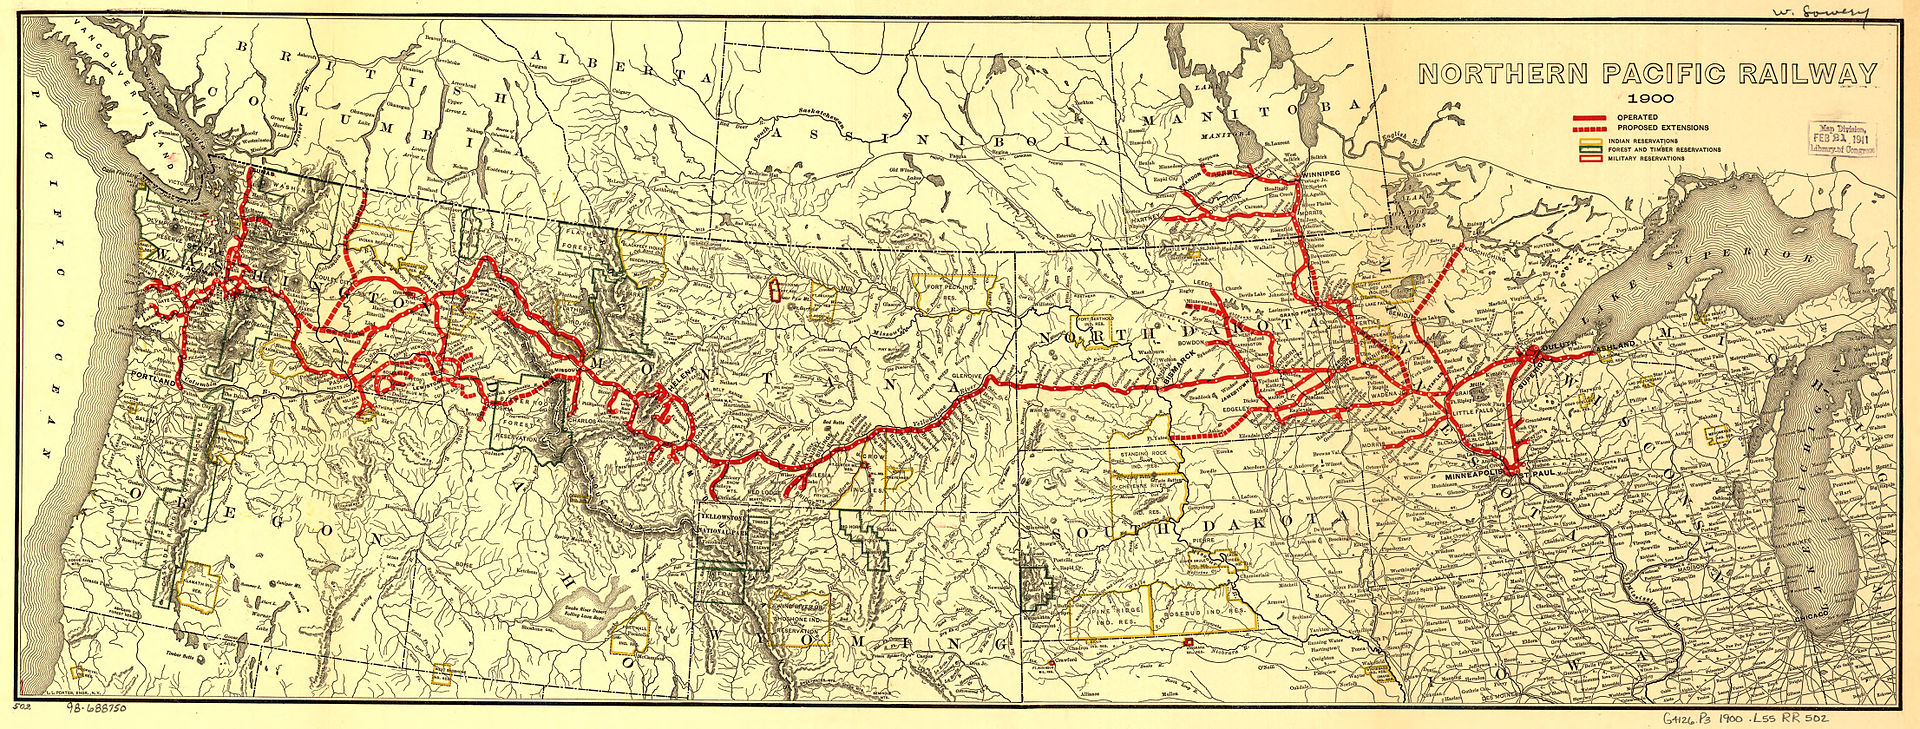 Map Of Railroad Expansion Across The US Maps Pinterest Our - Railway map of us